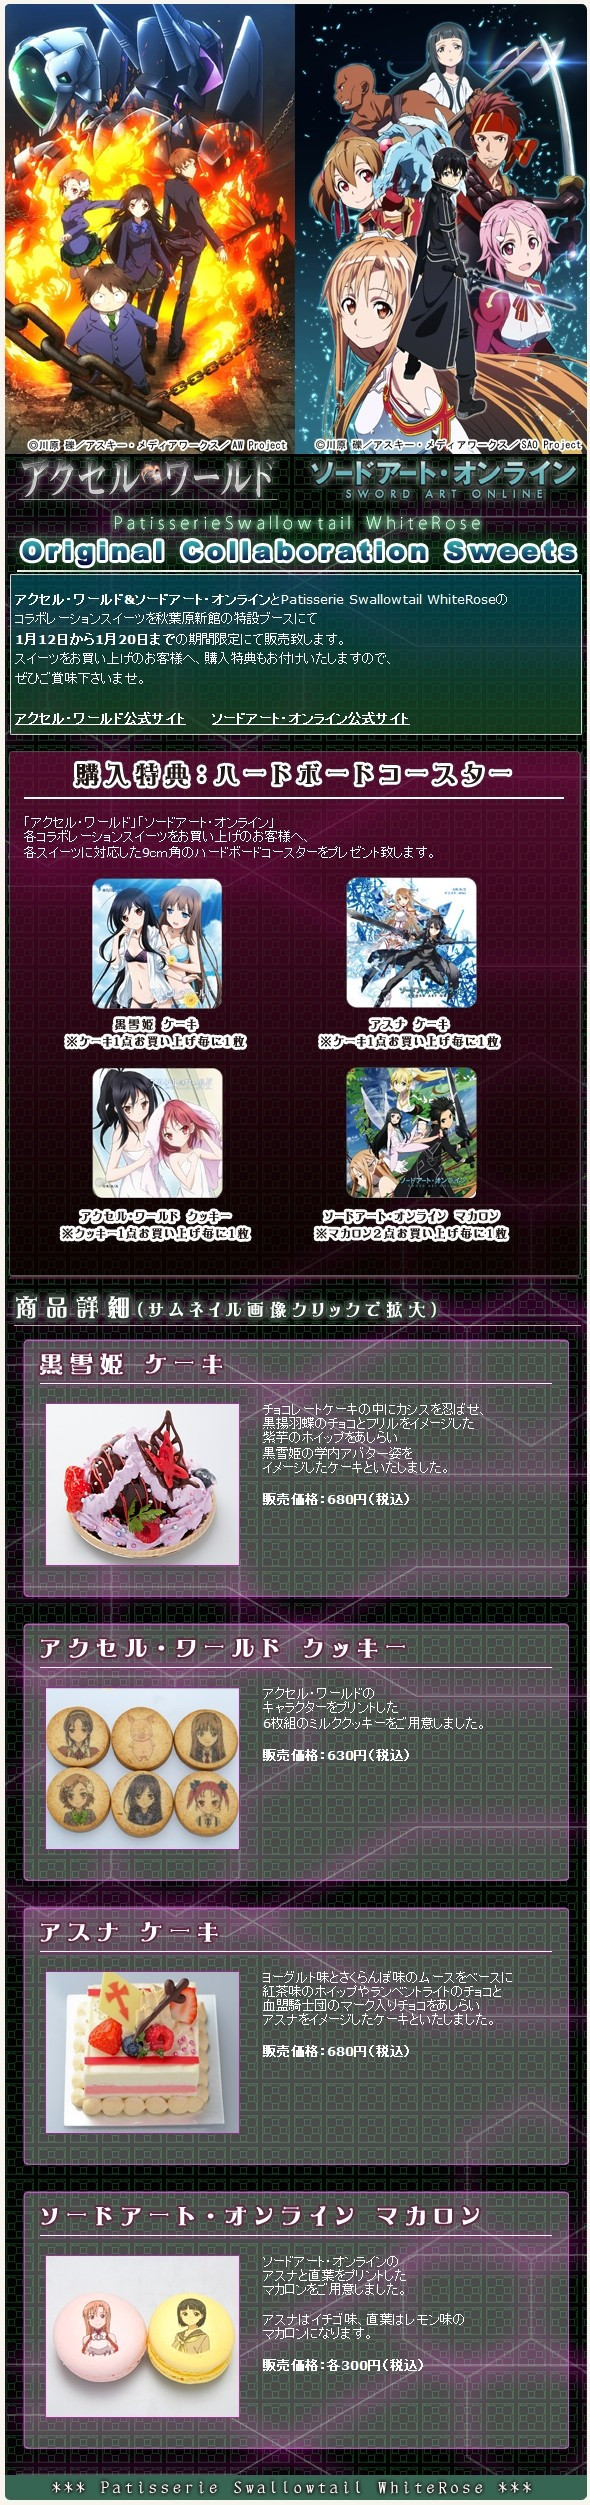 sword art online x accel world sweets collaboration